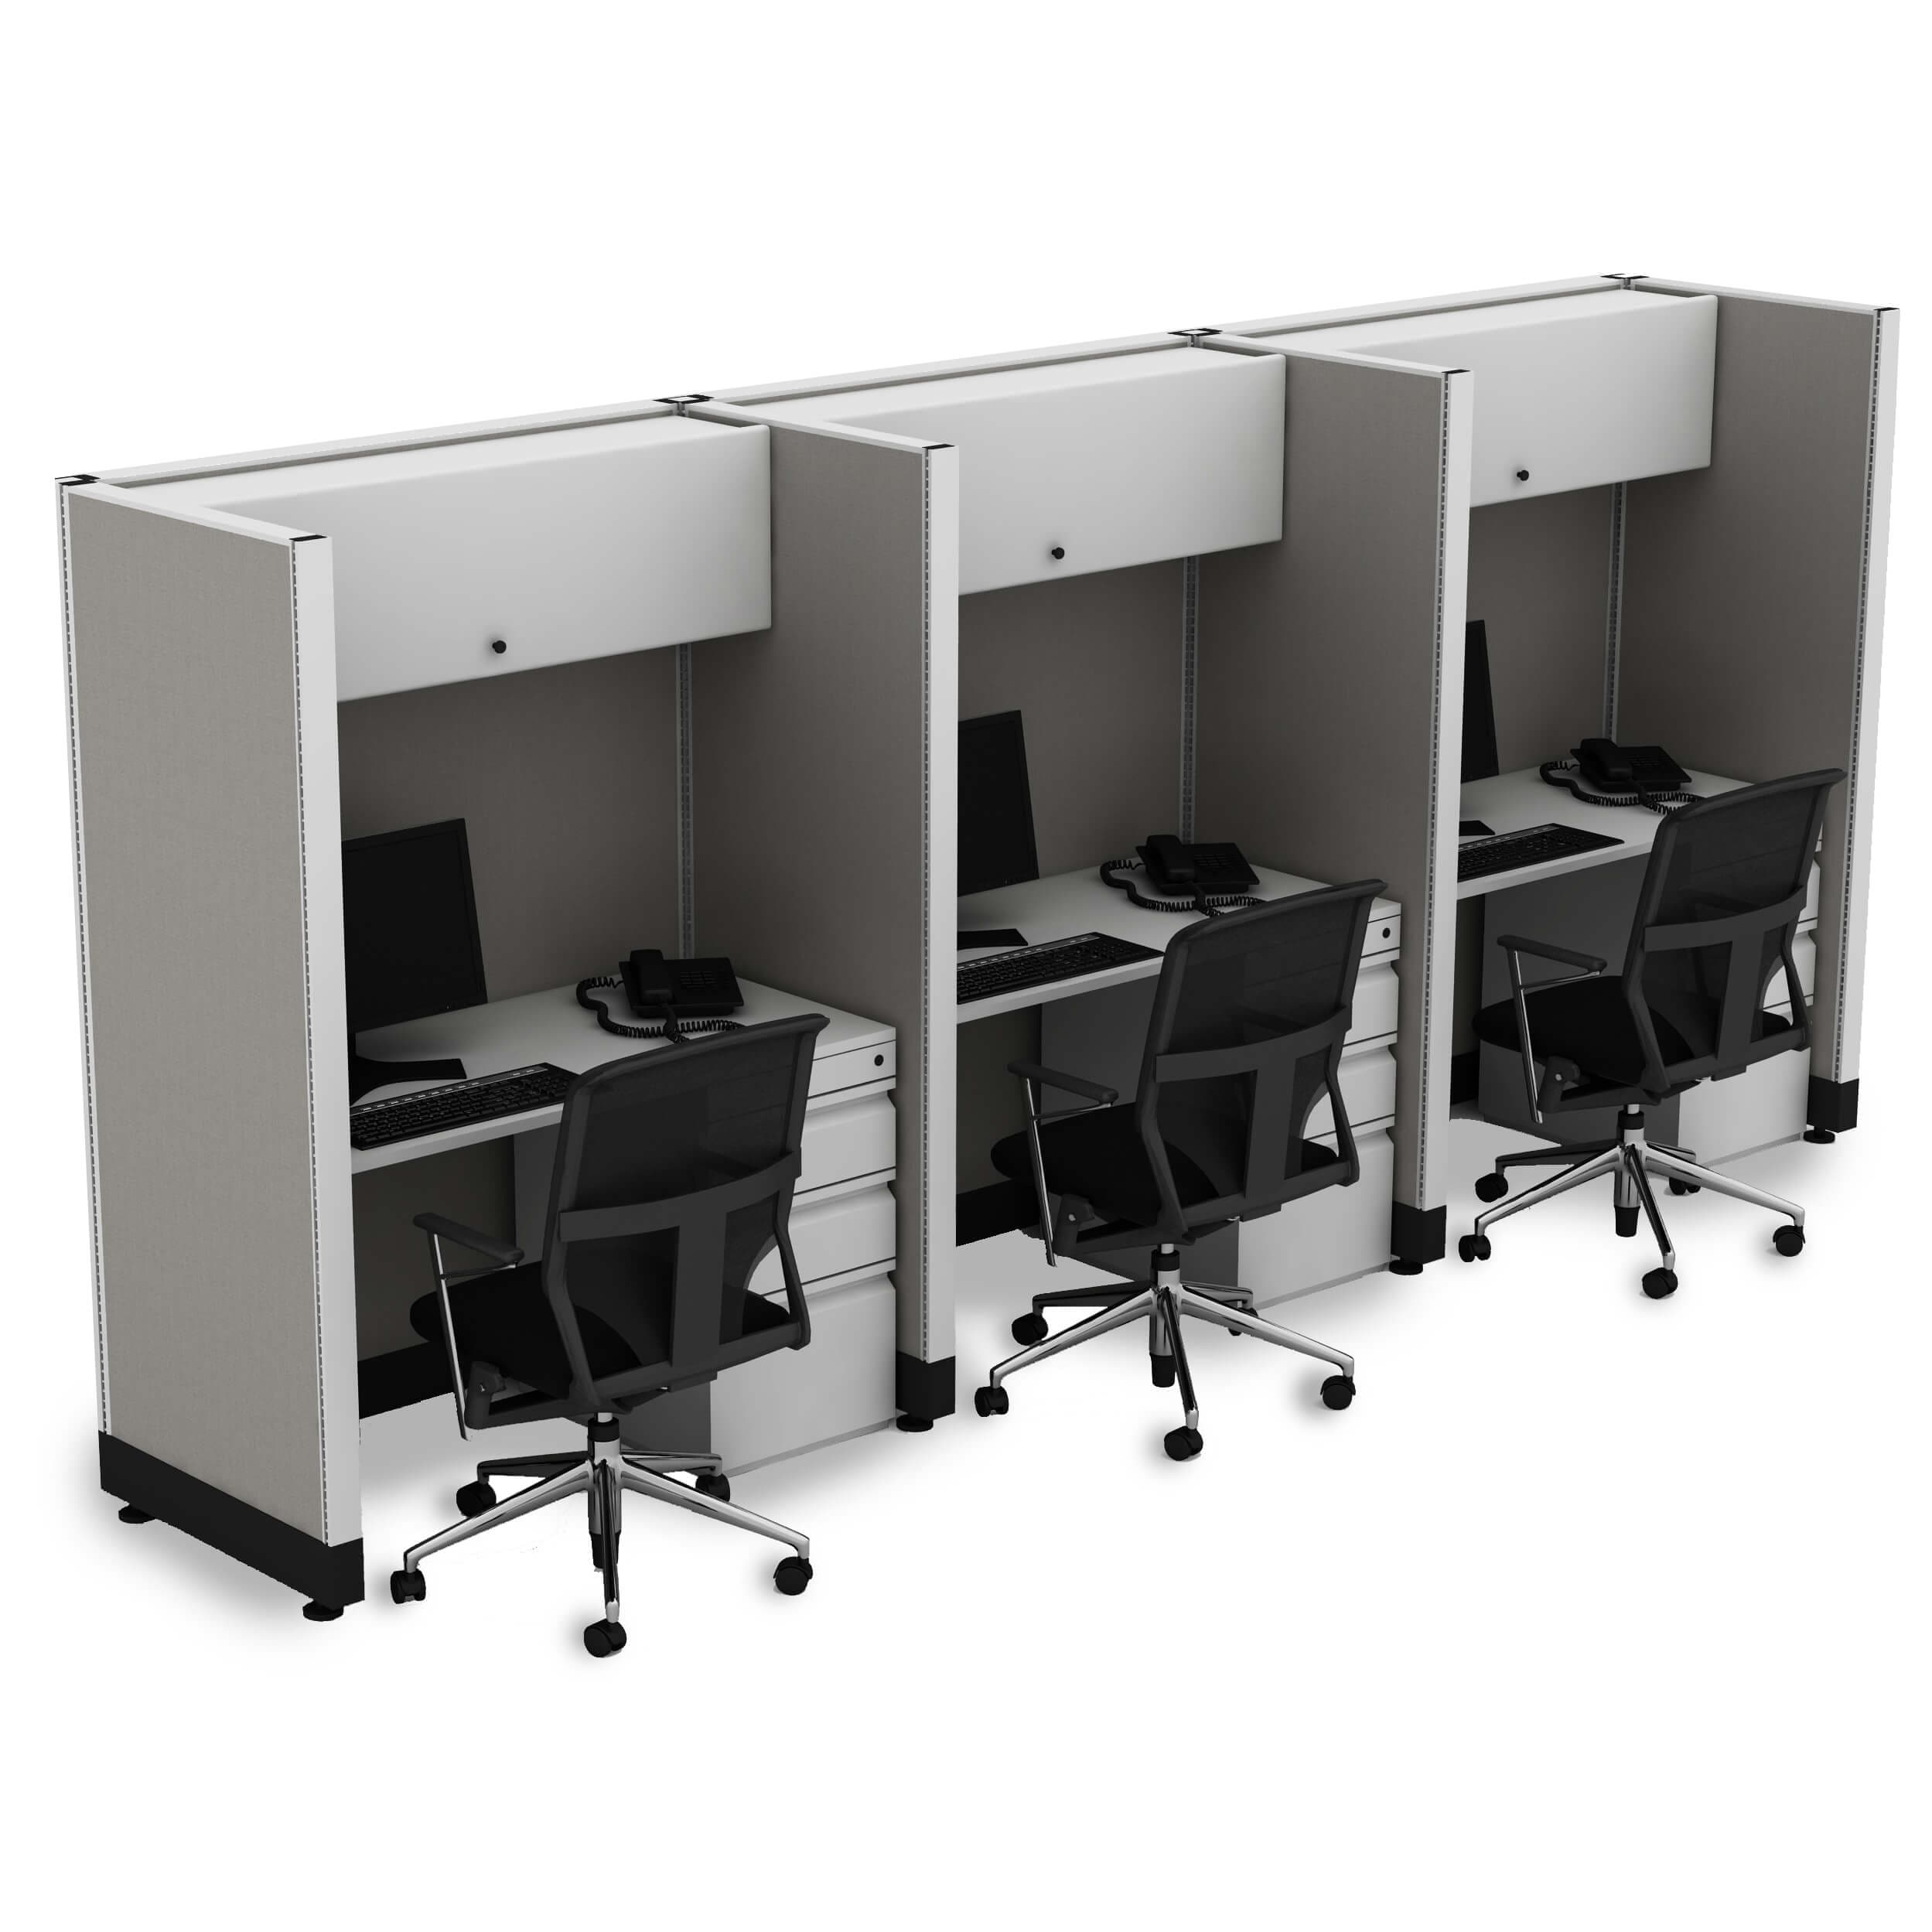 Hoteling Stations 67H 3pack Inline Powered (2x4 - Walnut Desk Silver Paint - Assembled)